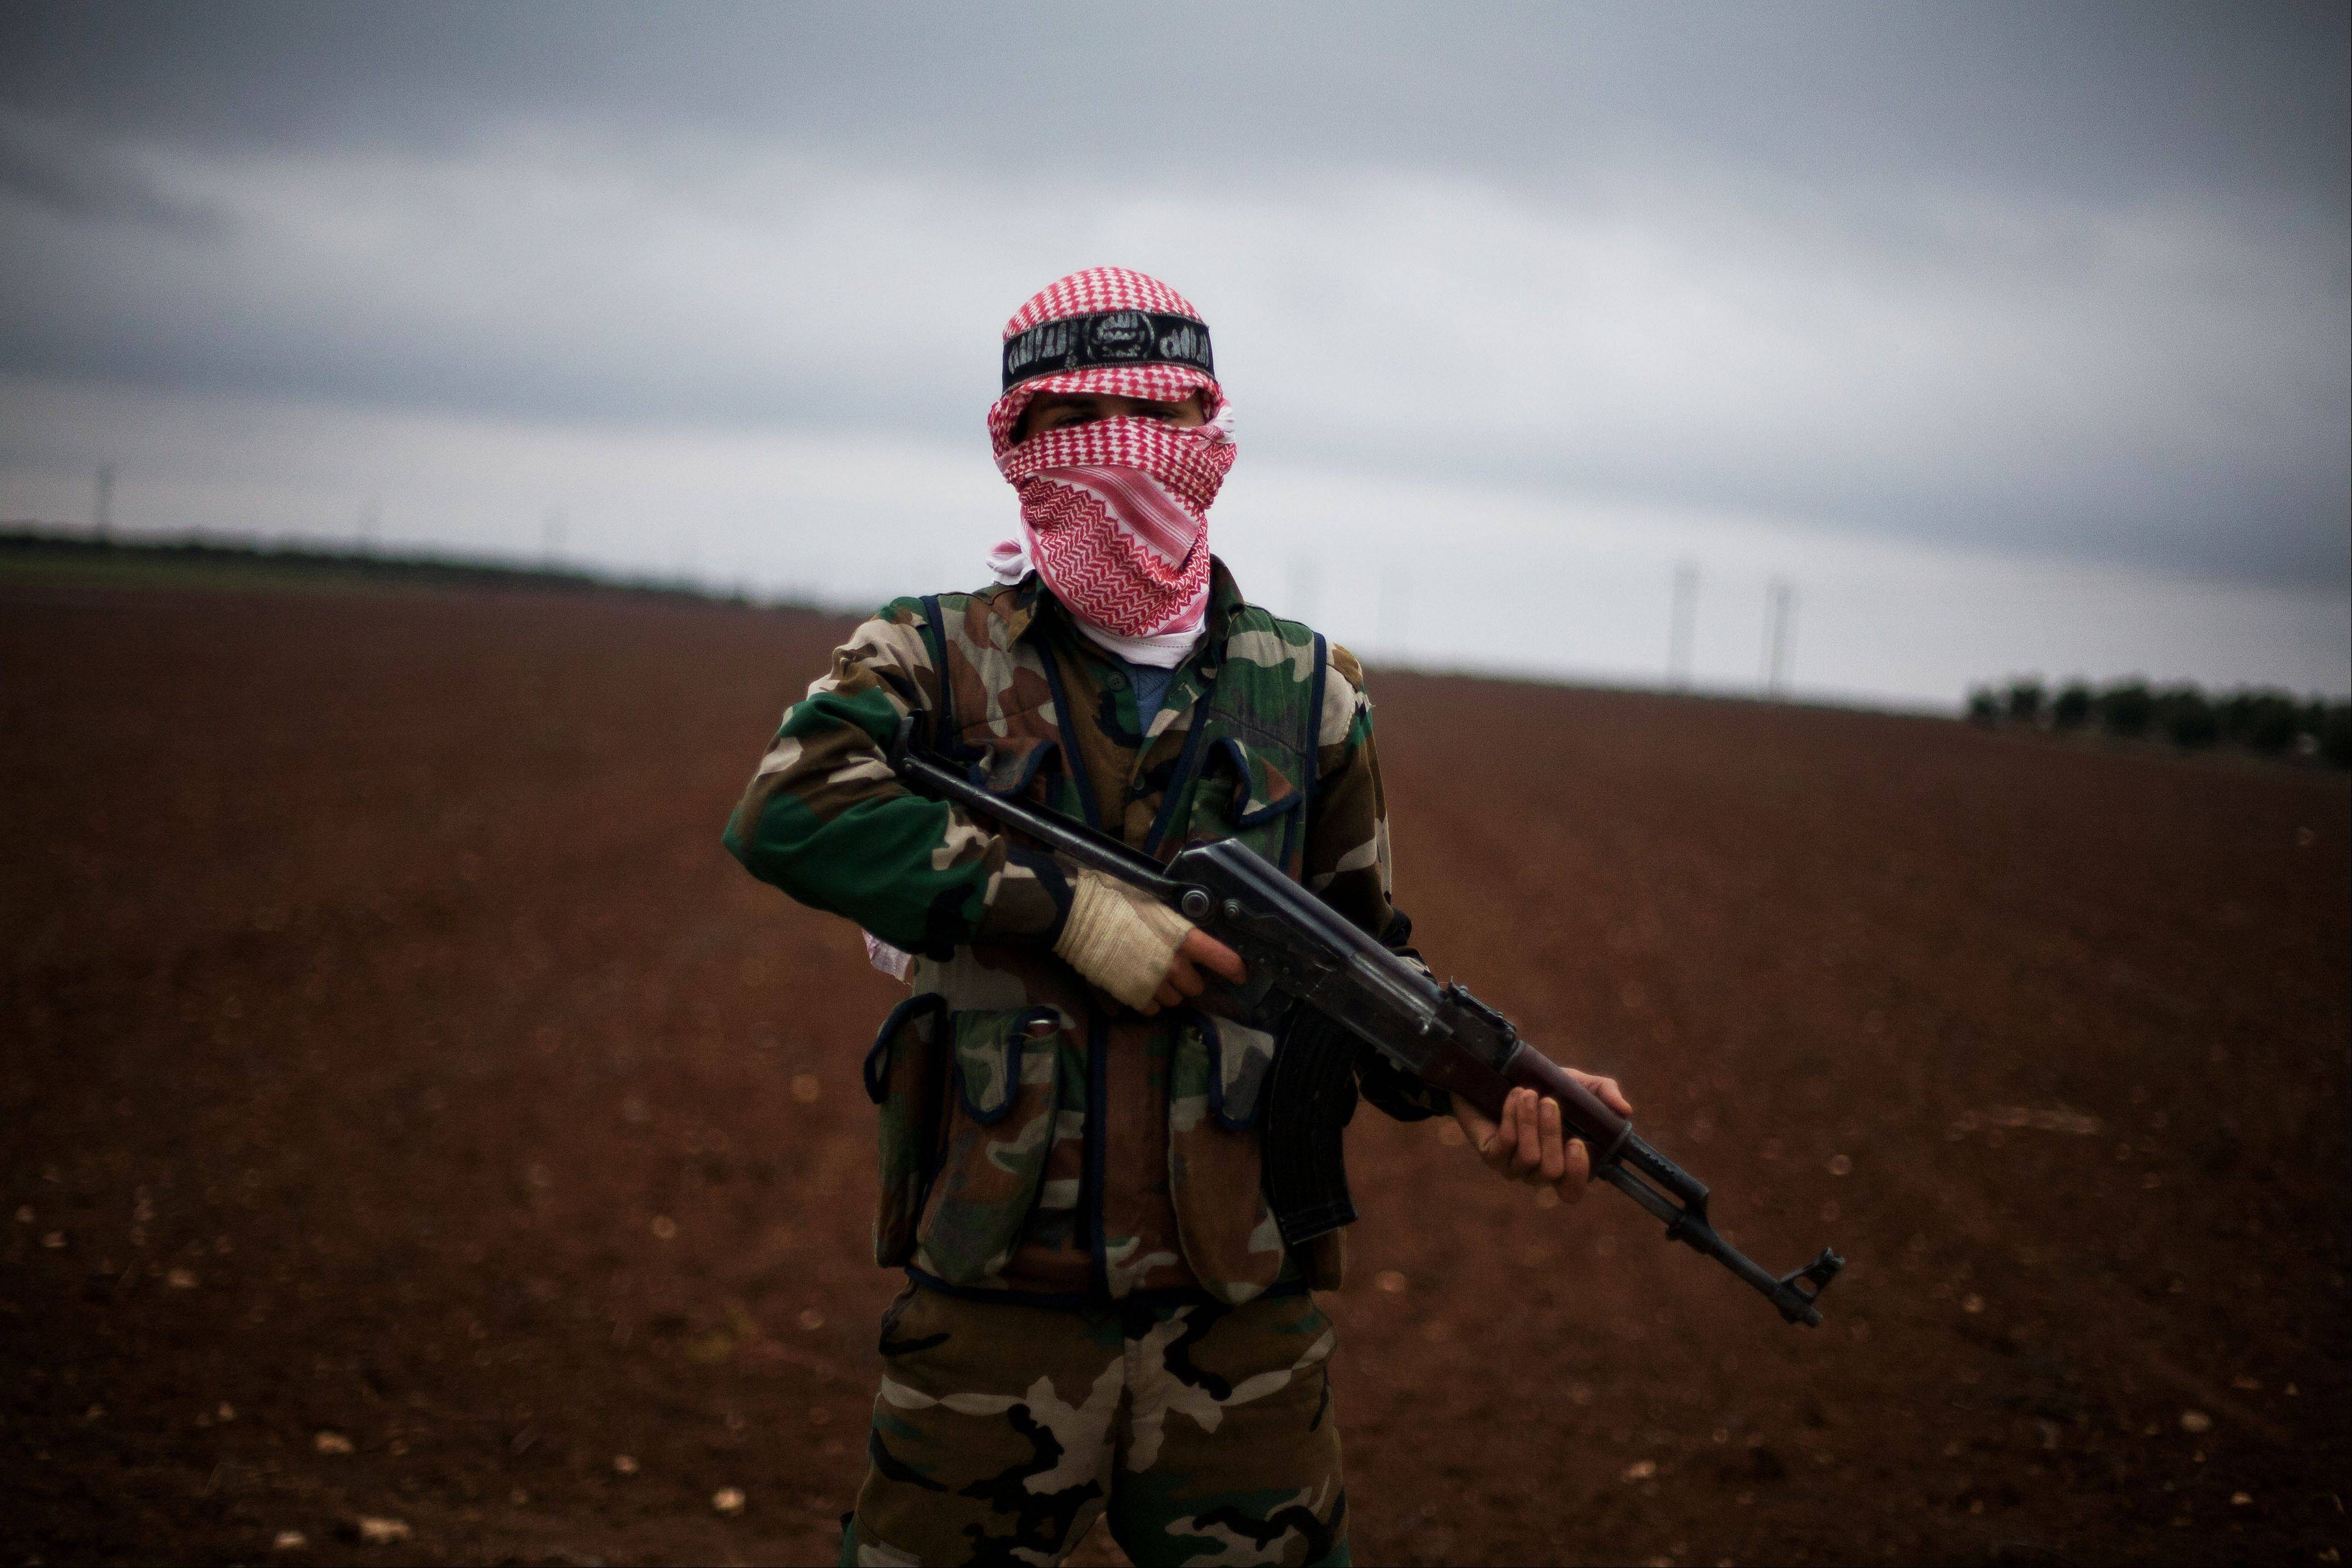 A Free Syrian Army fighter takes position close to a military base, near Azaz, Syria, Monday, Dec. 10, 2012. The gains by rebel forces came as the European Union denounced the Syrian conflict, which activists say has killed more than 40,000 people.